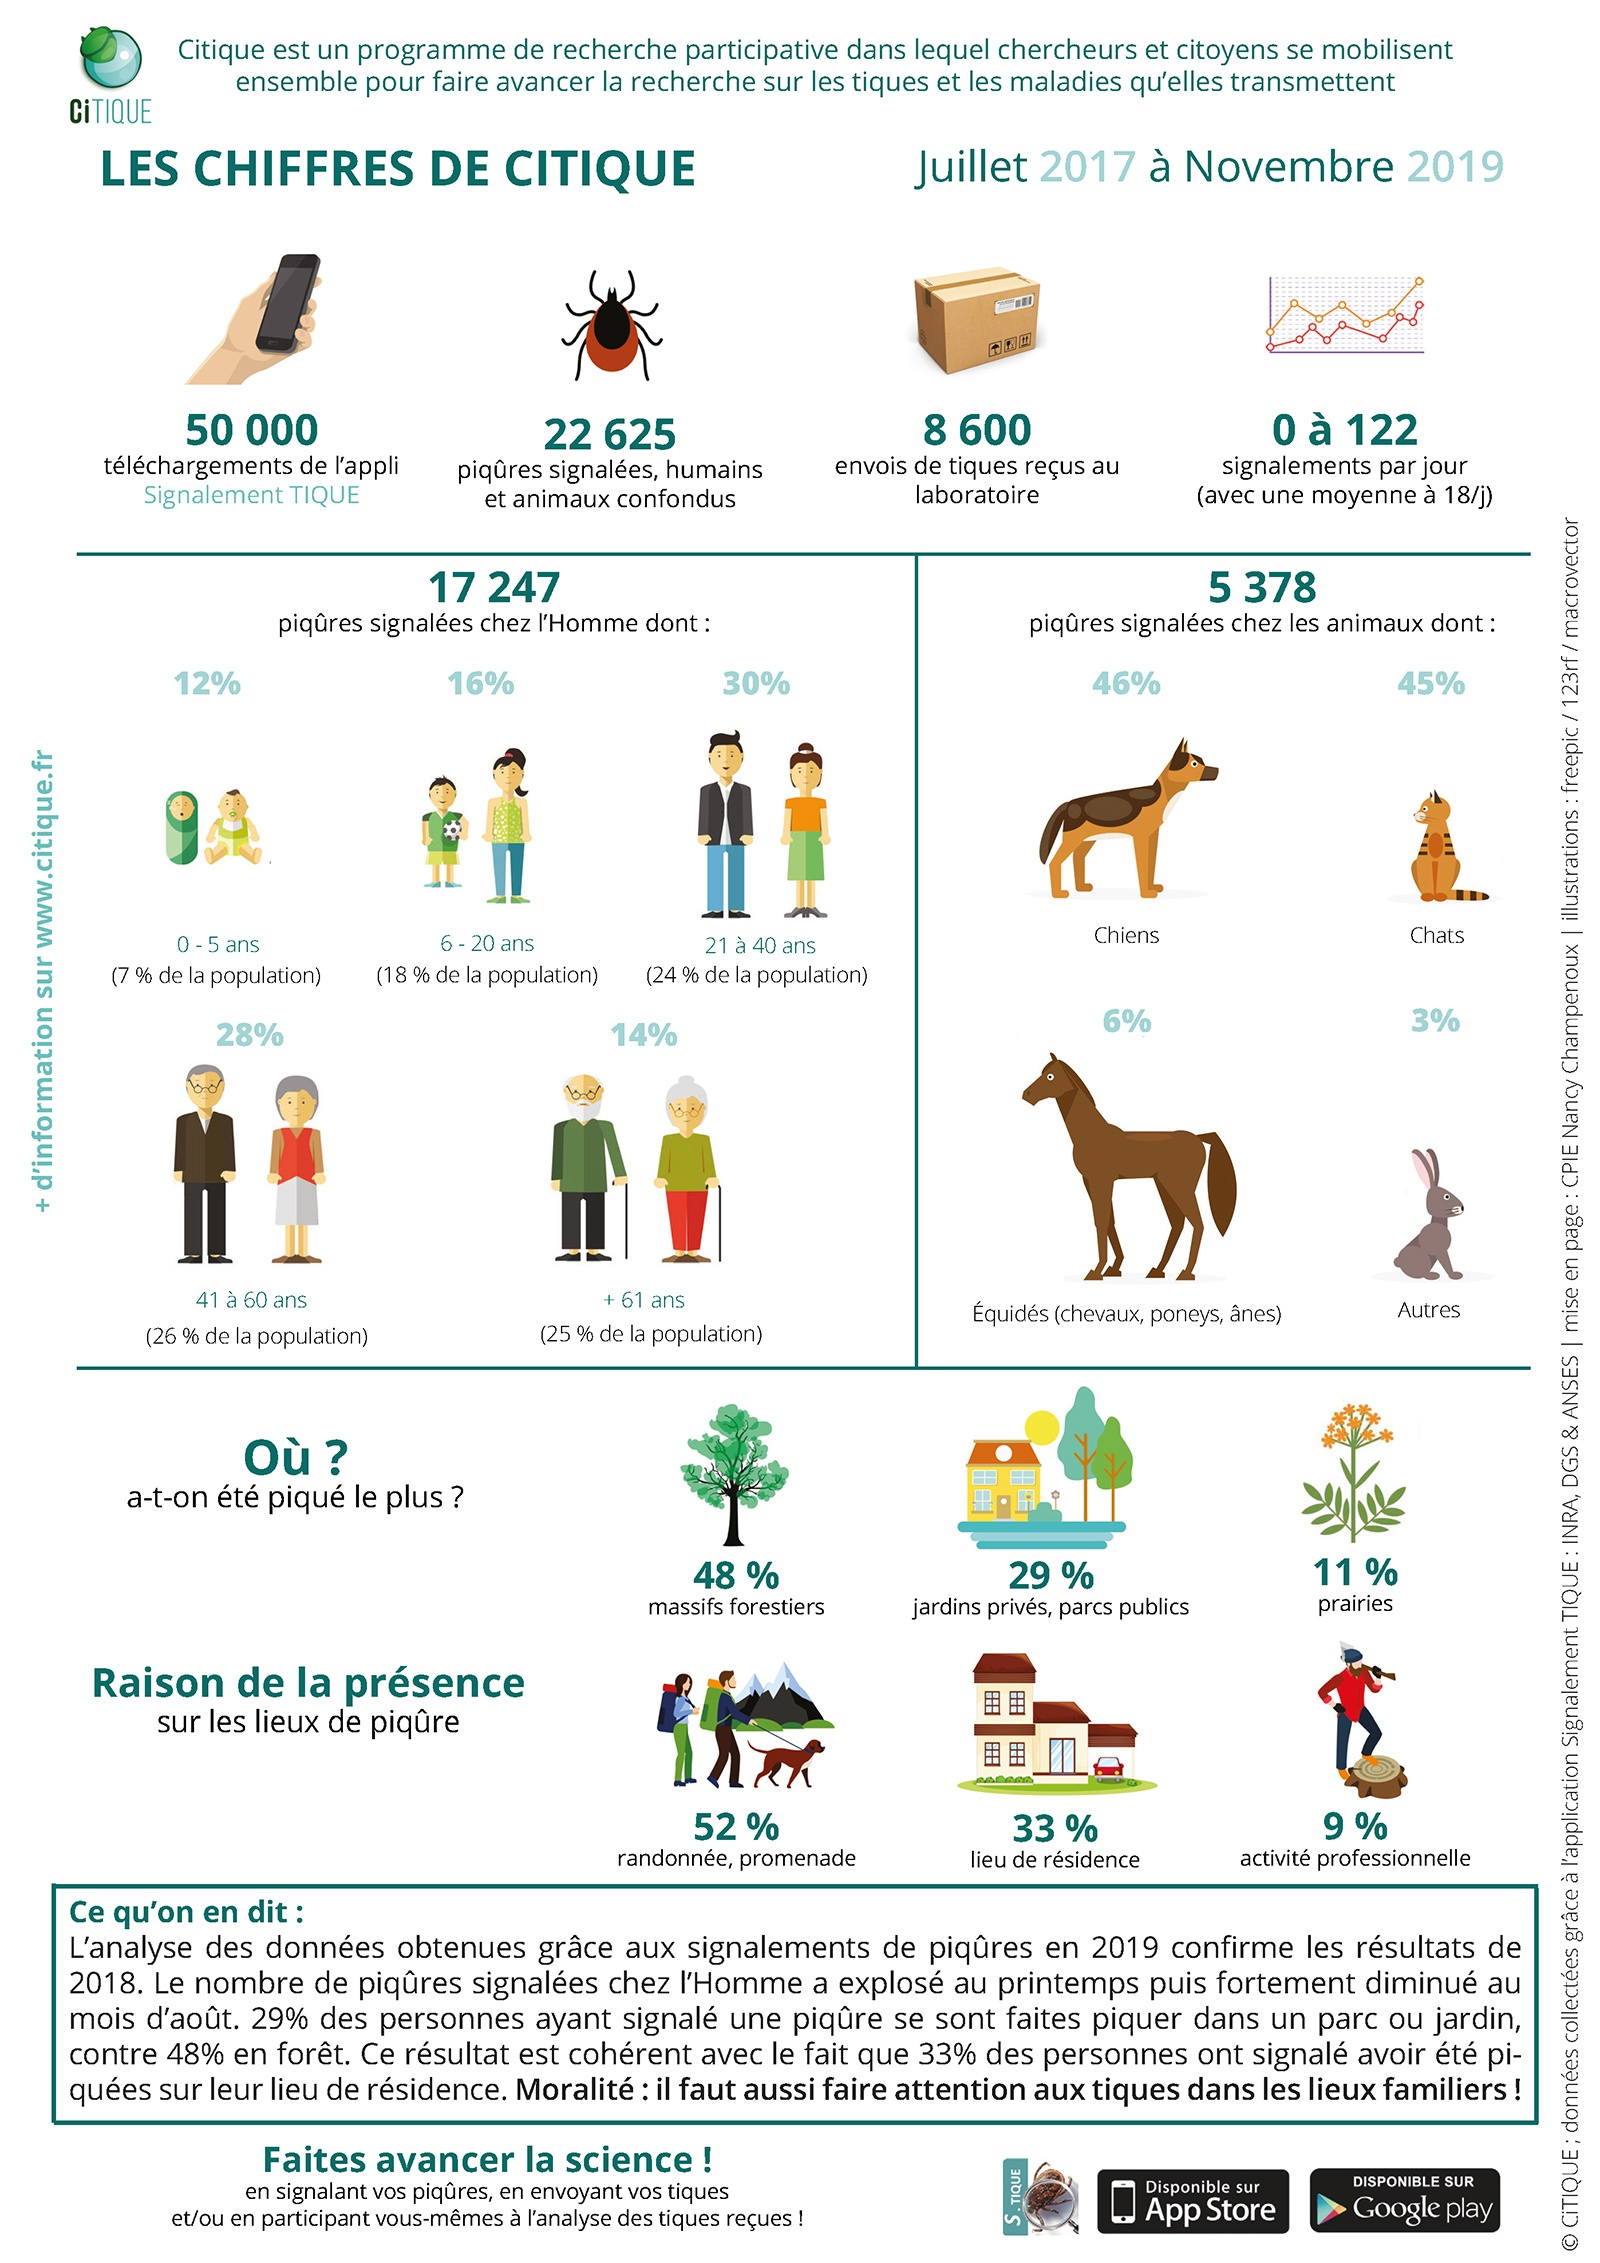 Infographie CiTIQUE 2017-2019